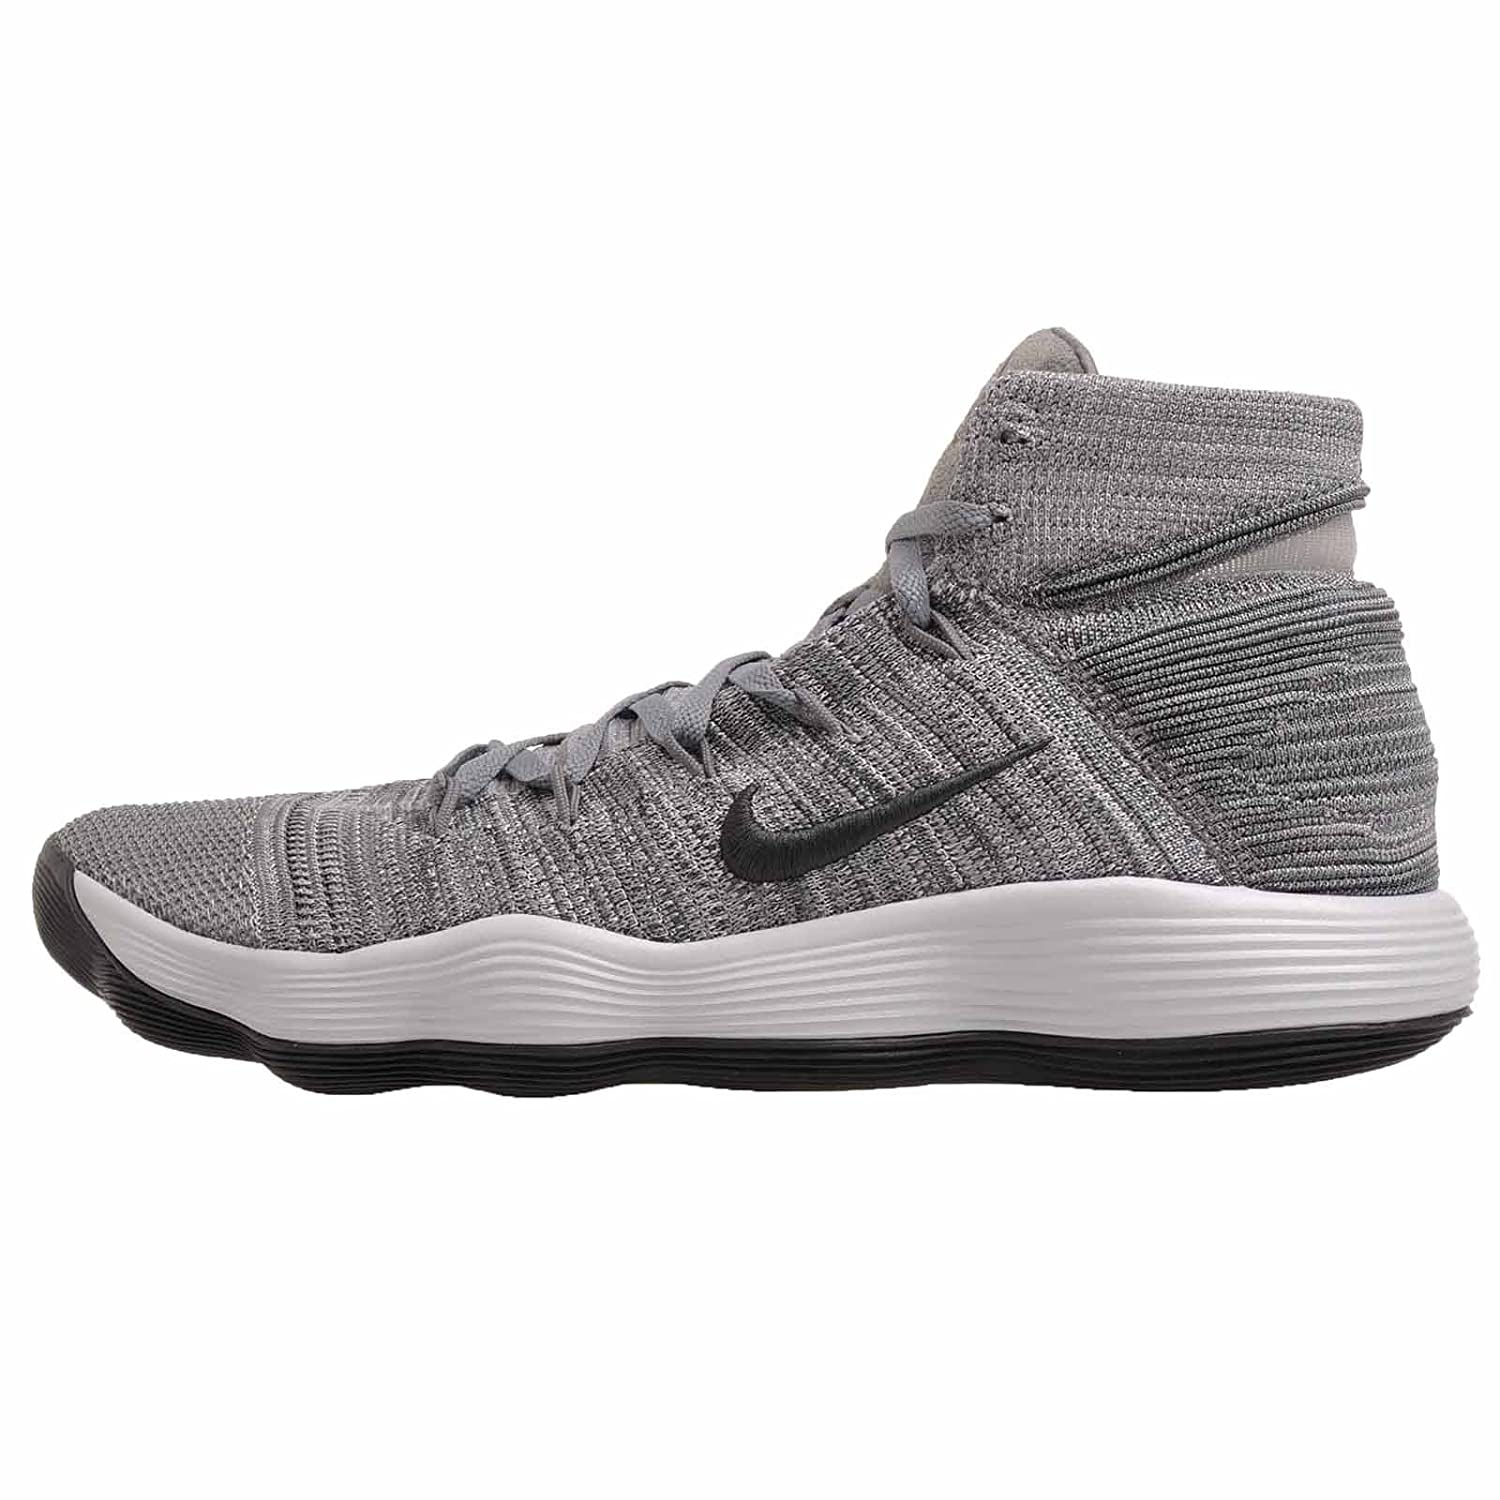 6808822b0523 NIKE Hyperdunk 2017 Flyknit Basketball Shoes Mens Cool Grey Anthracite New  917726-007  Amazon.co.uk  Shoes   Bags